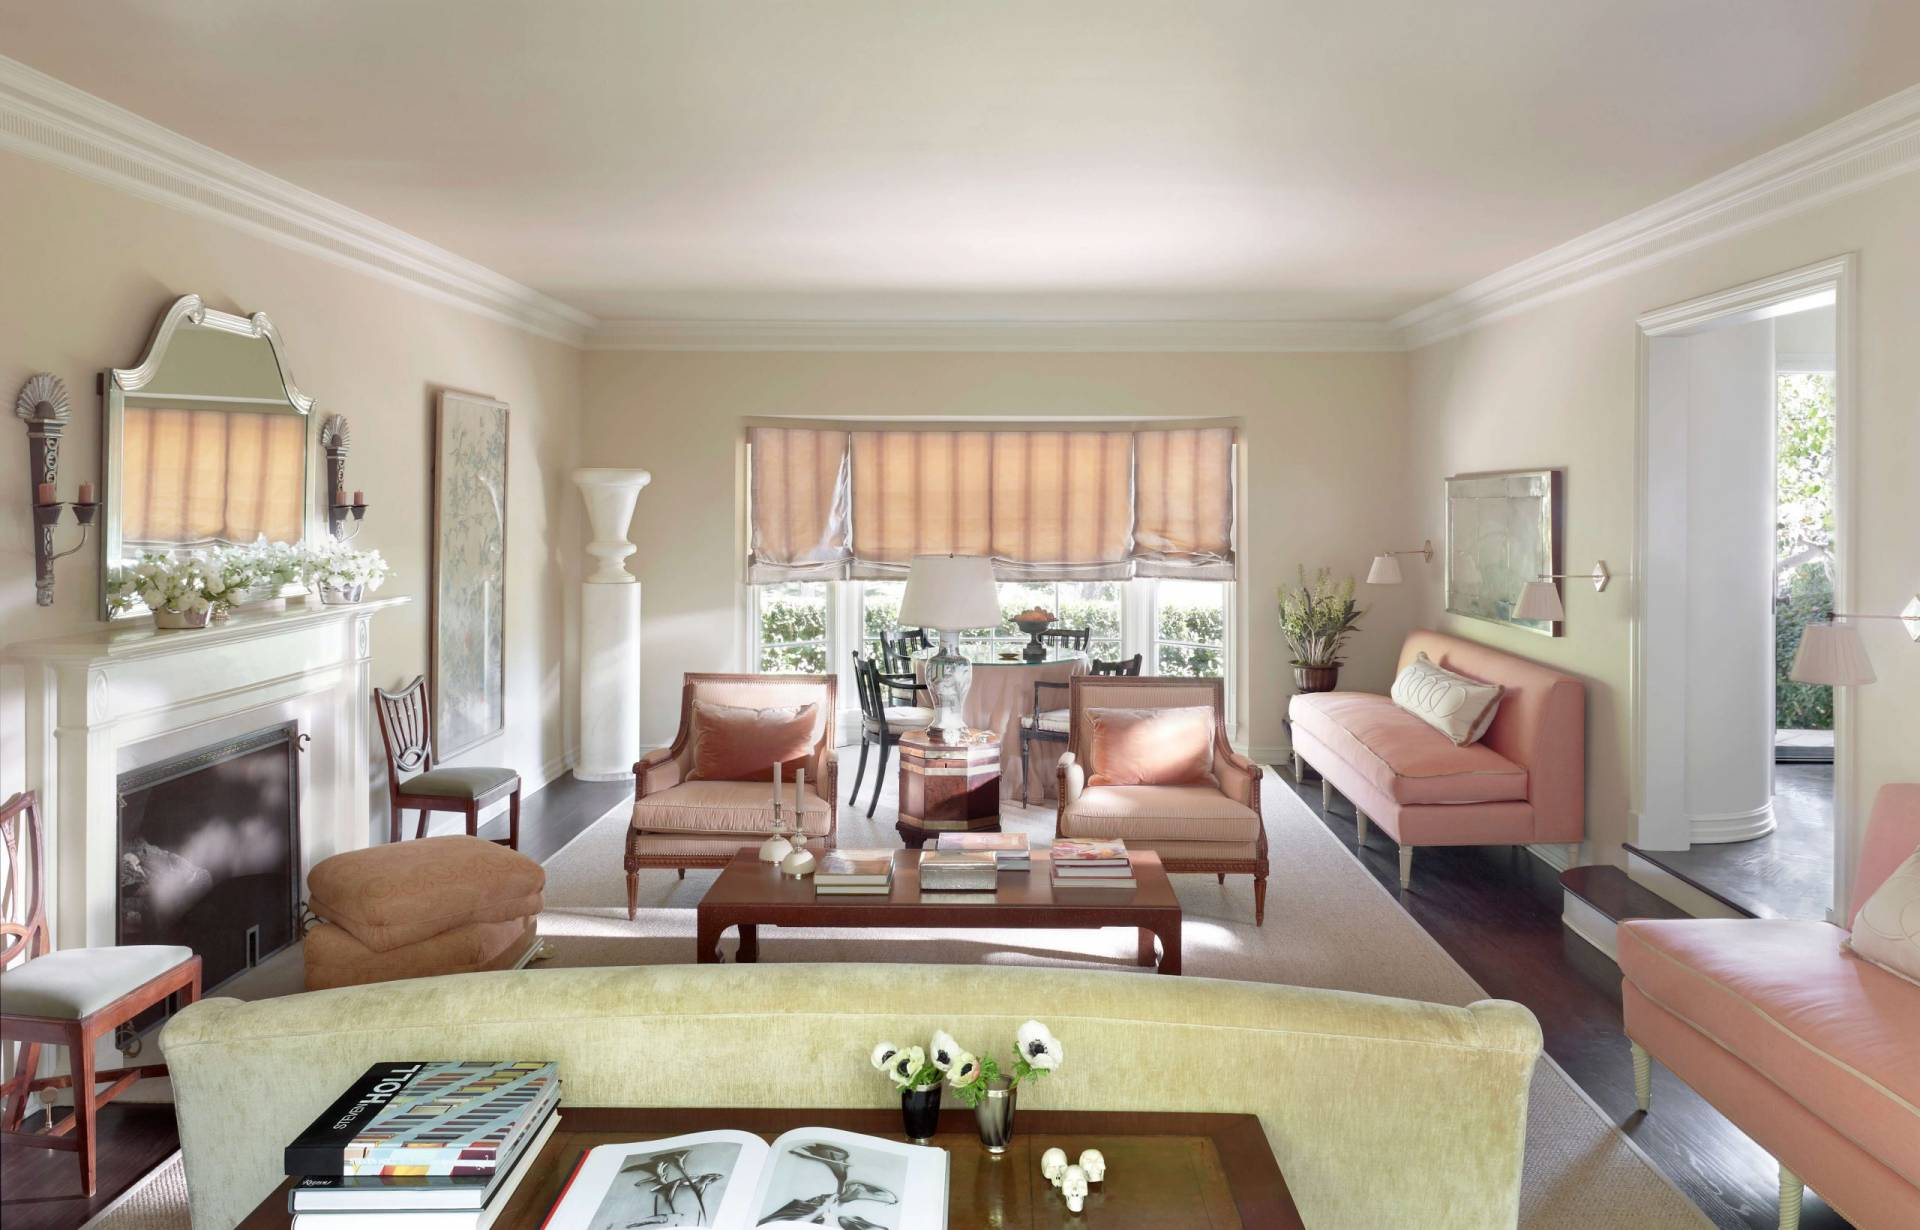 Living room with roman shades